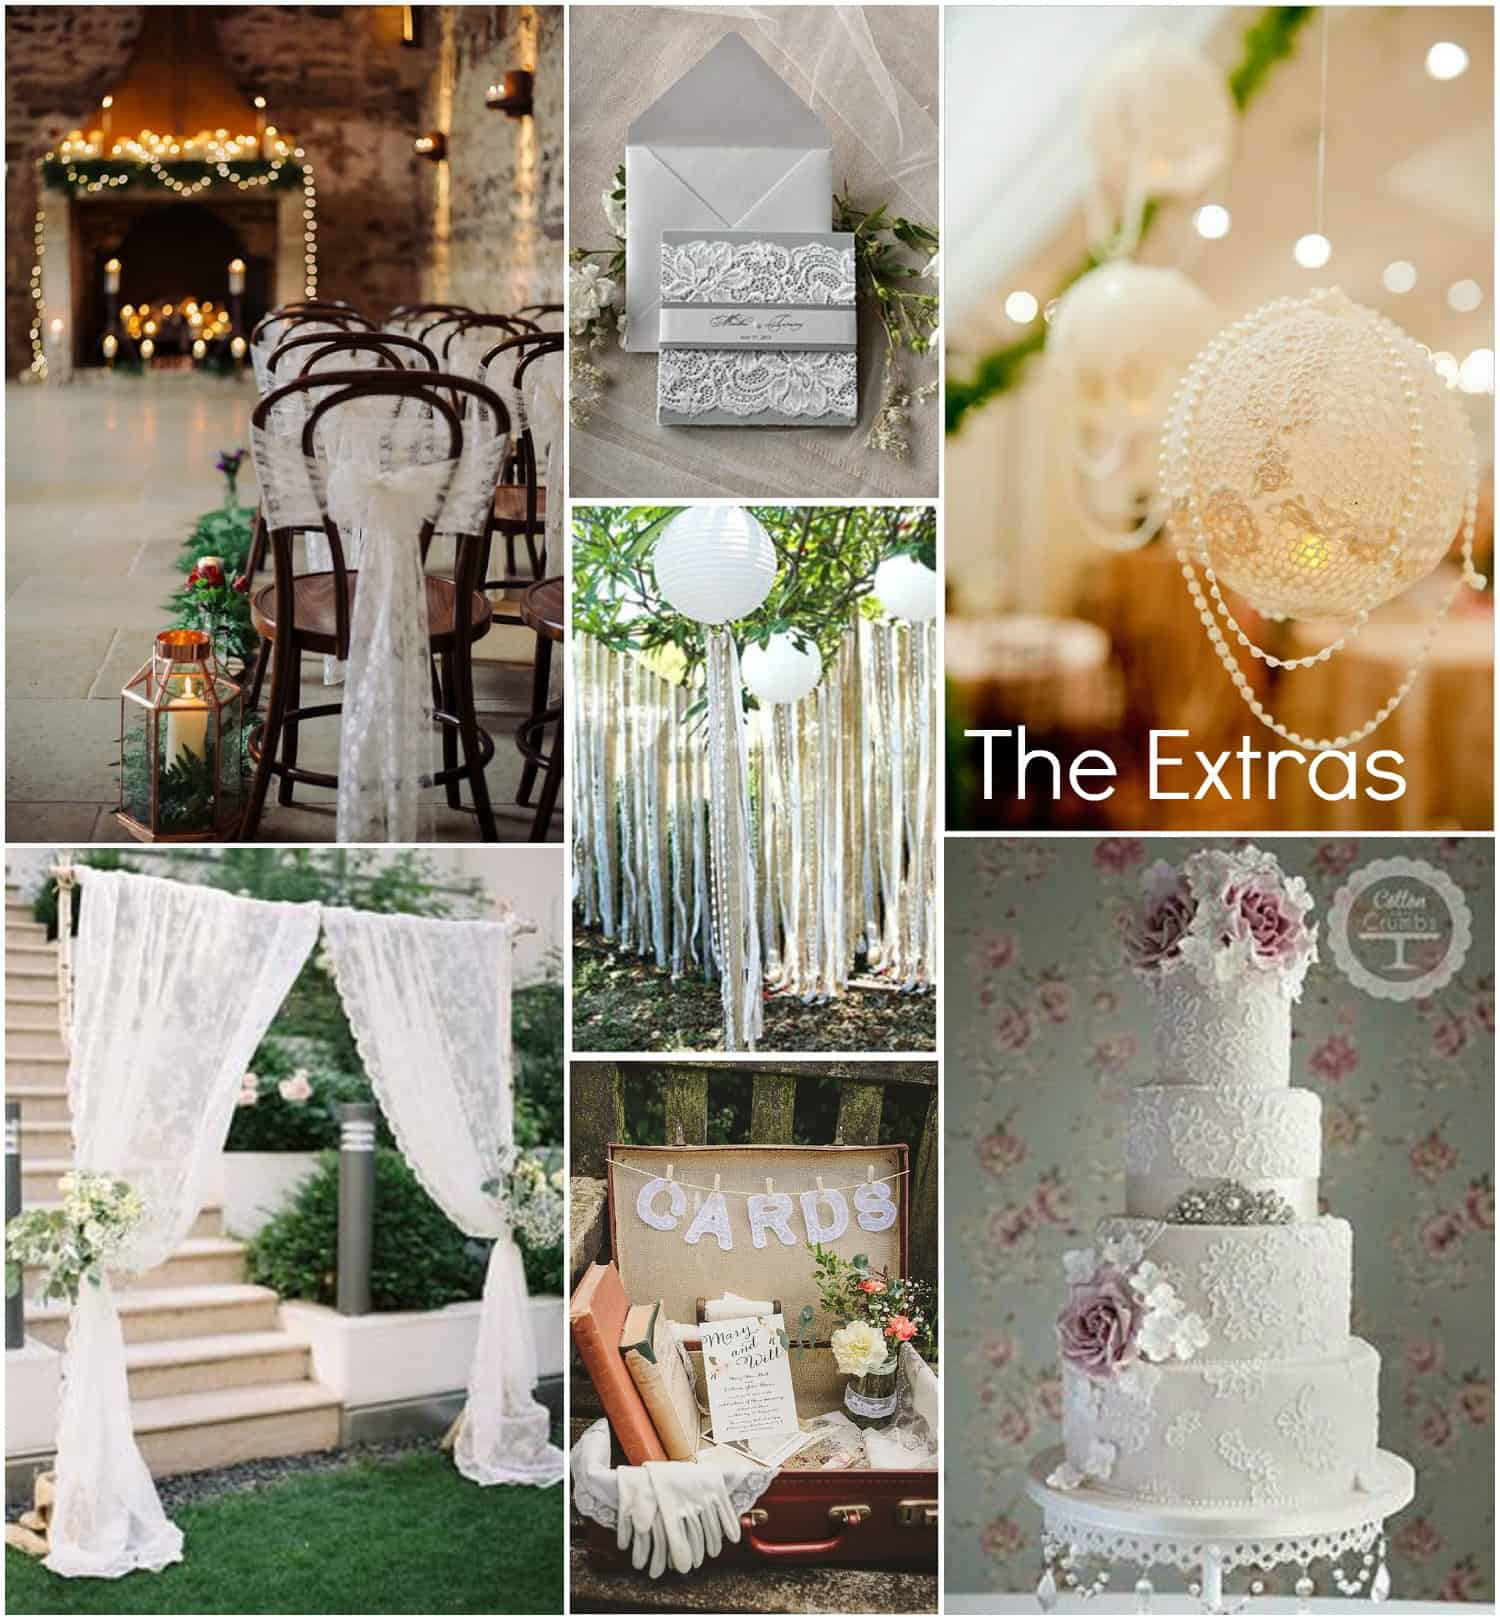 Lace extras - chair backs, stationery, wedding cake, curtains, wedding styling